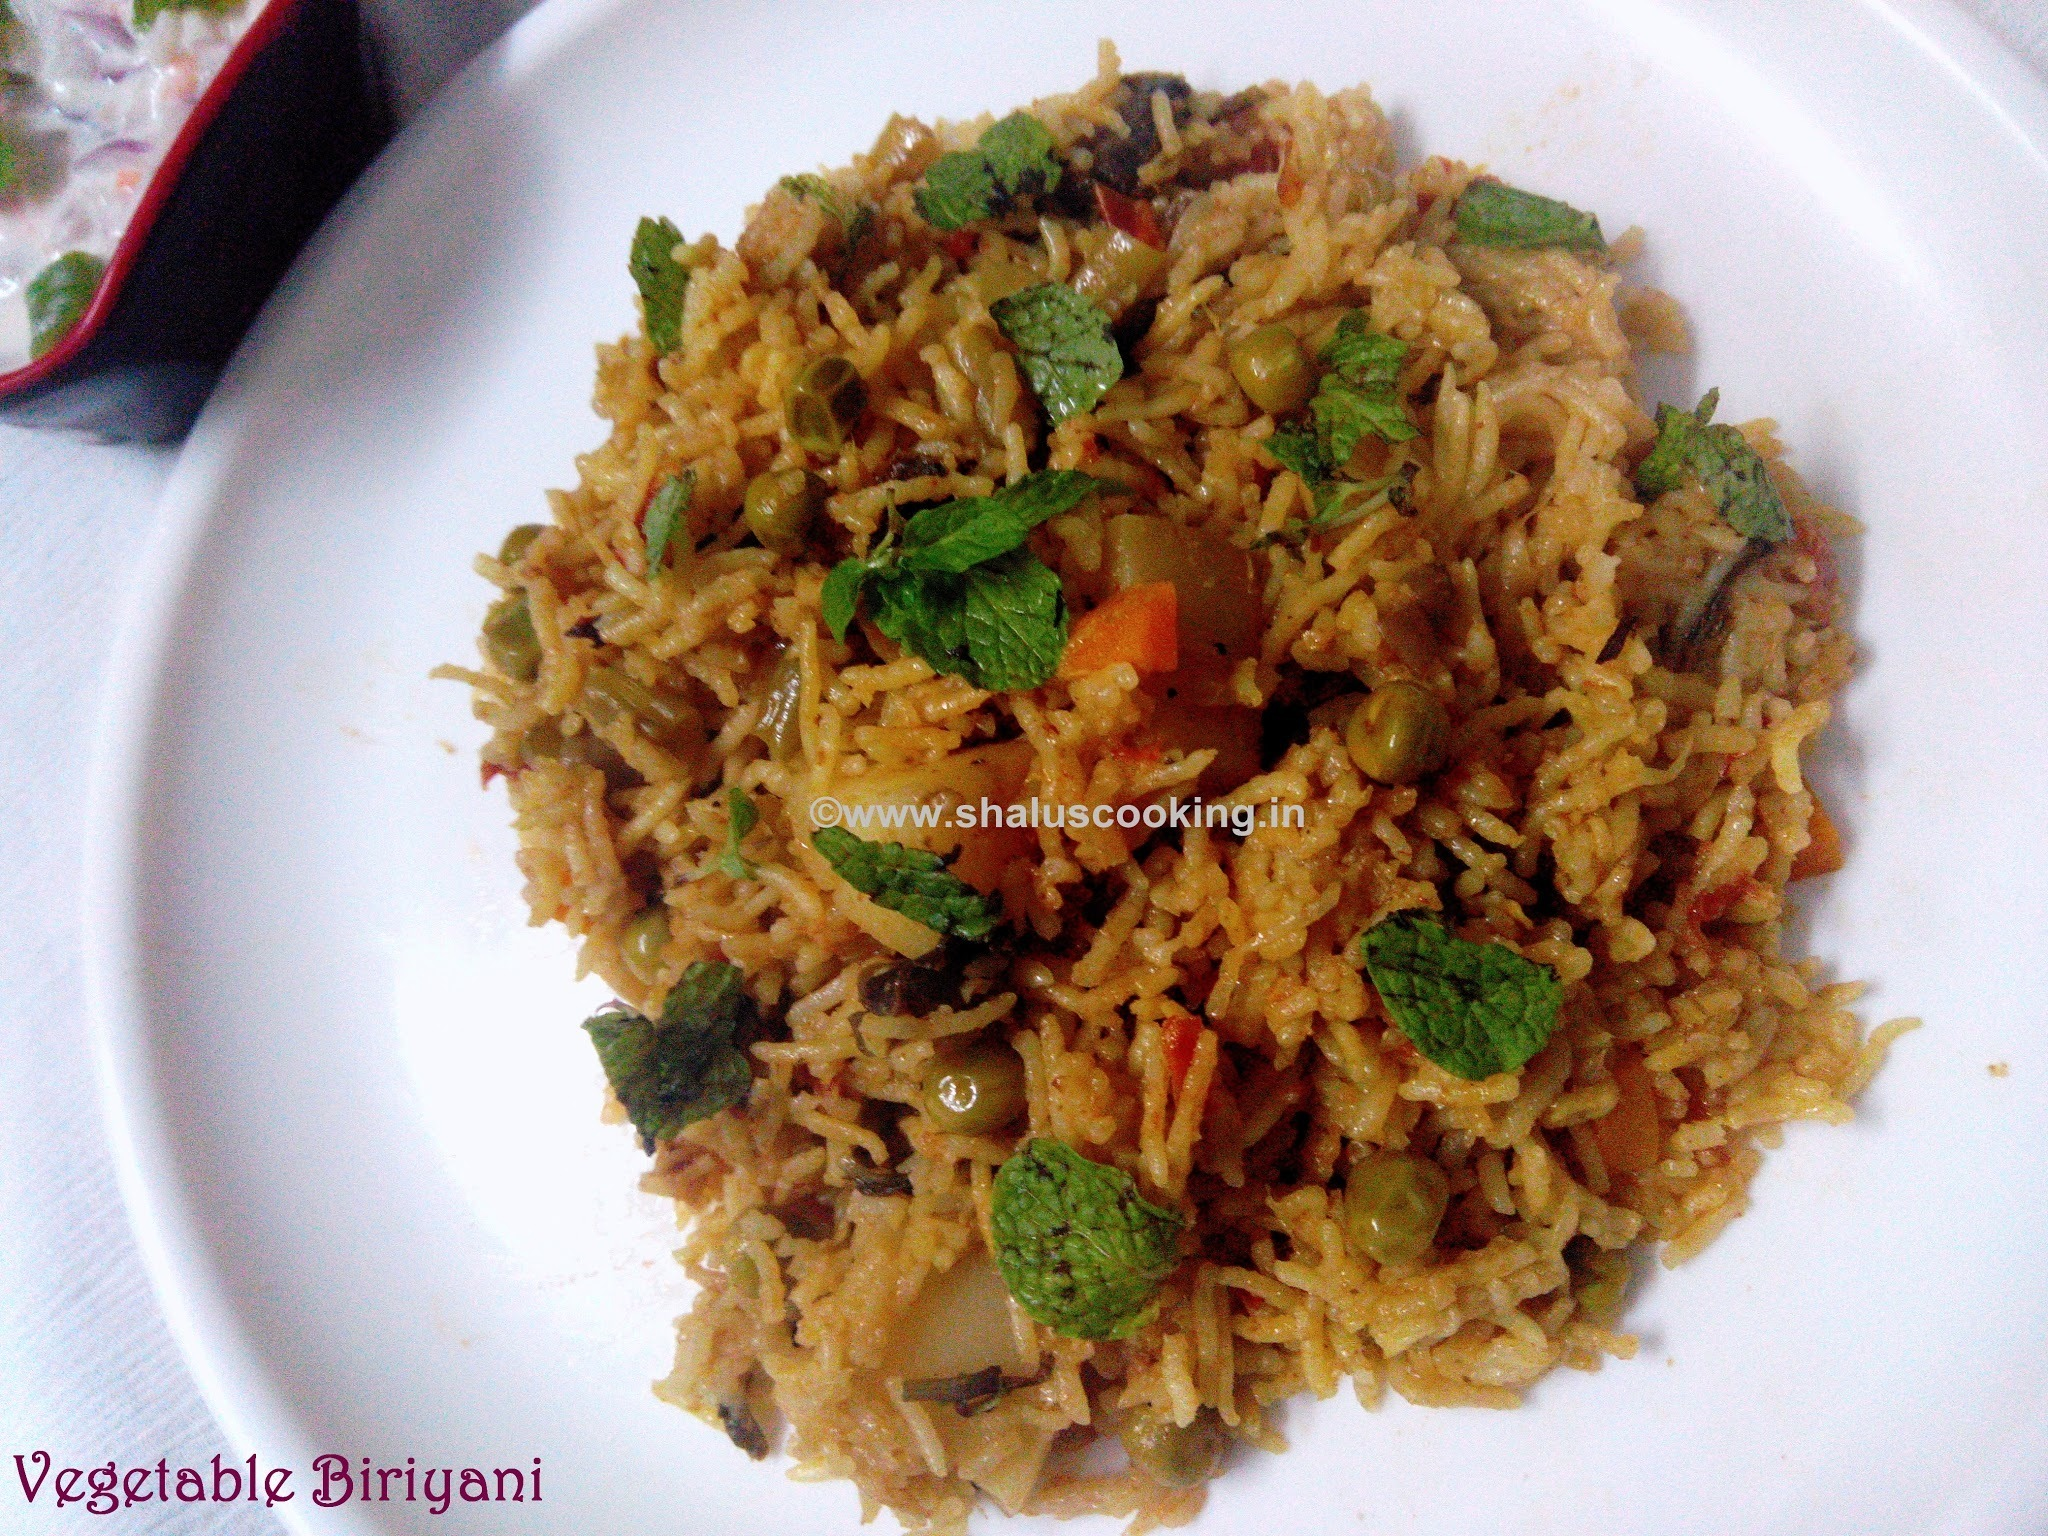 Vegetable Biriyani